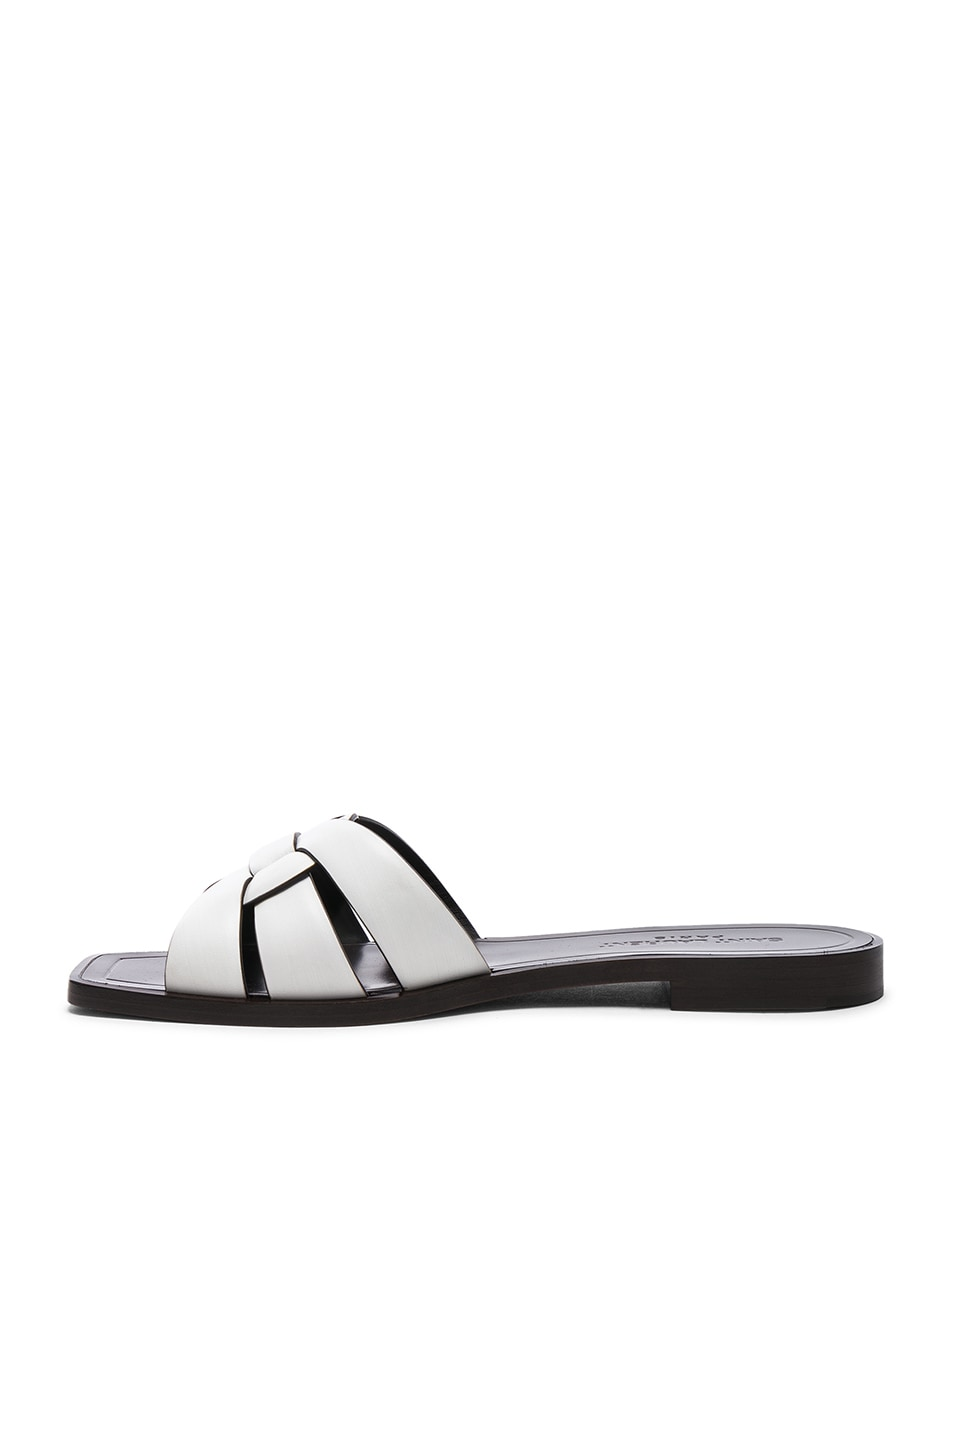 Image 5 of Saint Laurent Leather Nu Pieds Slides in Optic White